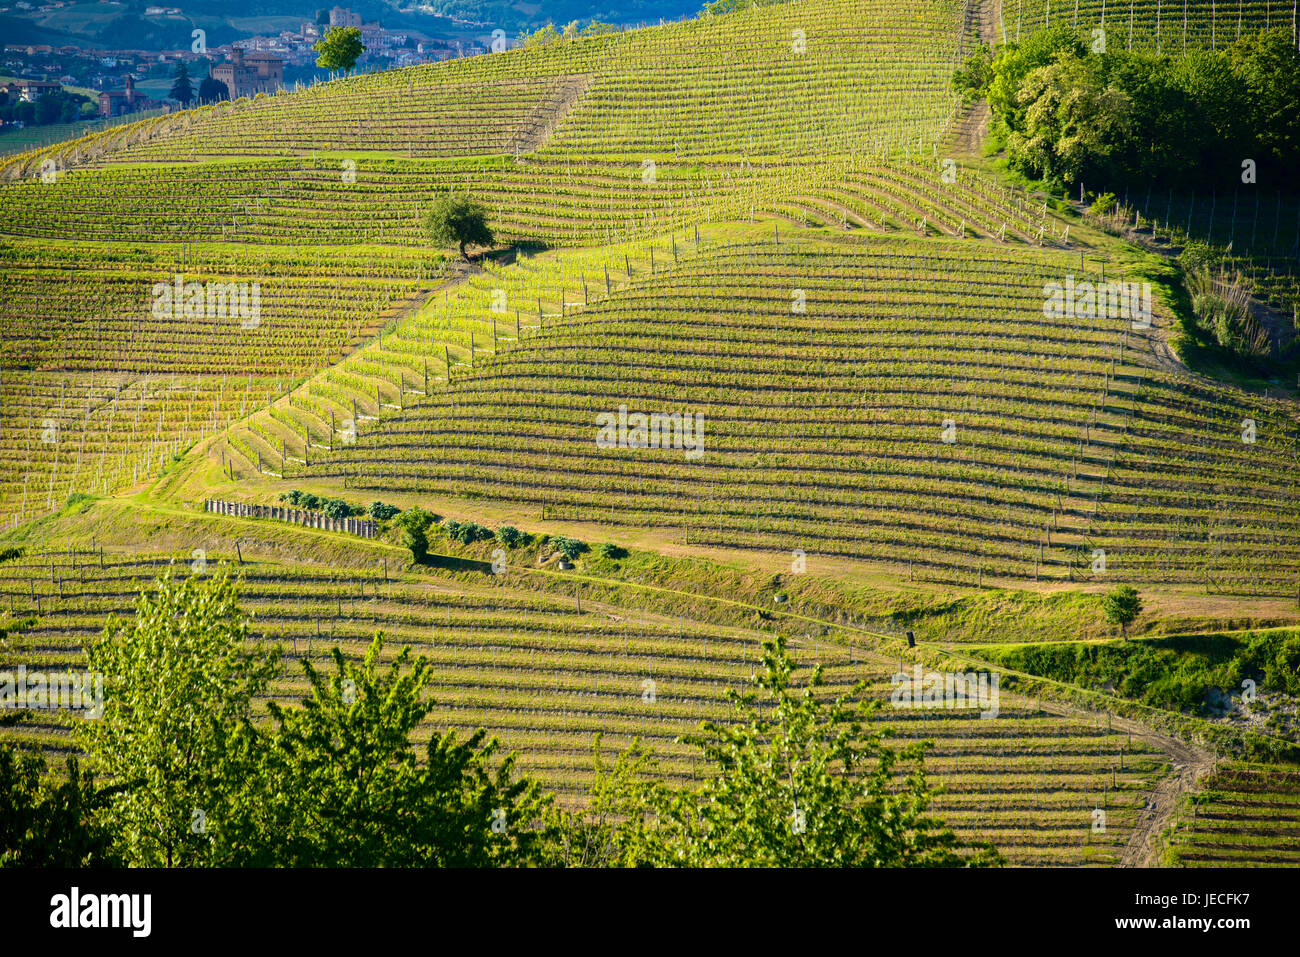 View of the vineyards and Langa hills - Stock Image